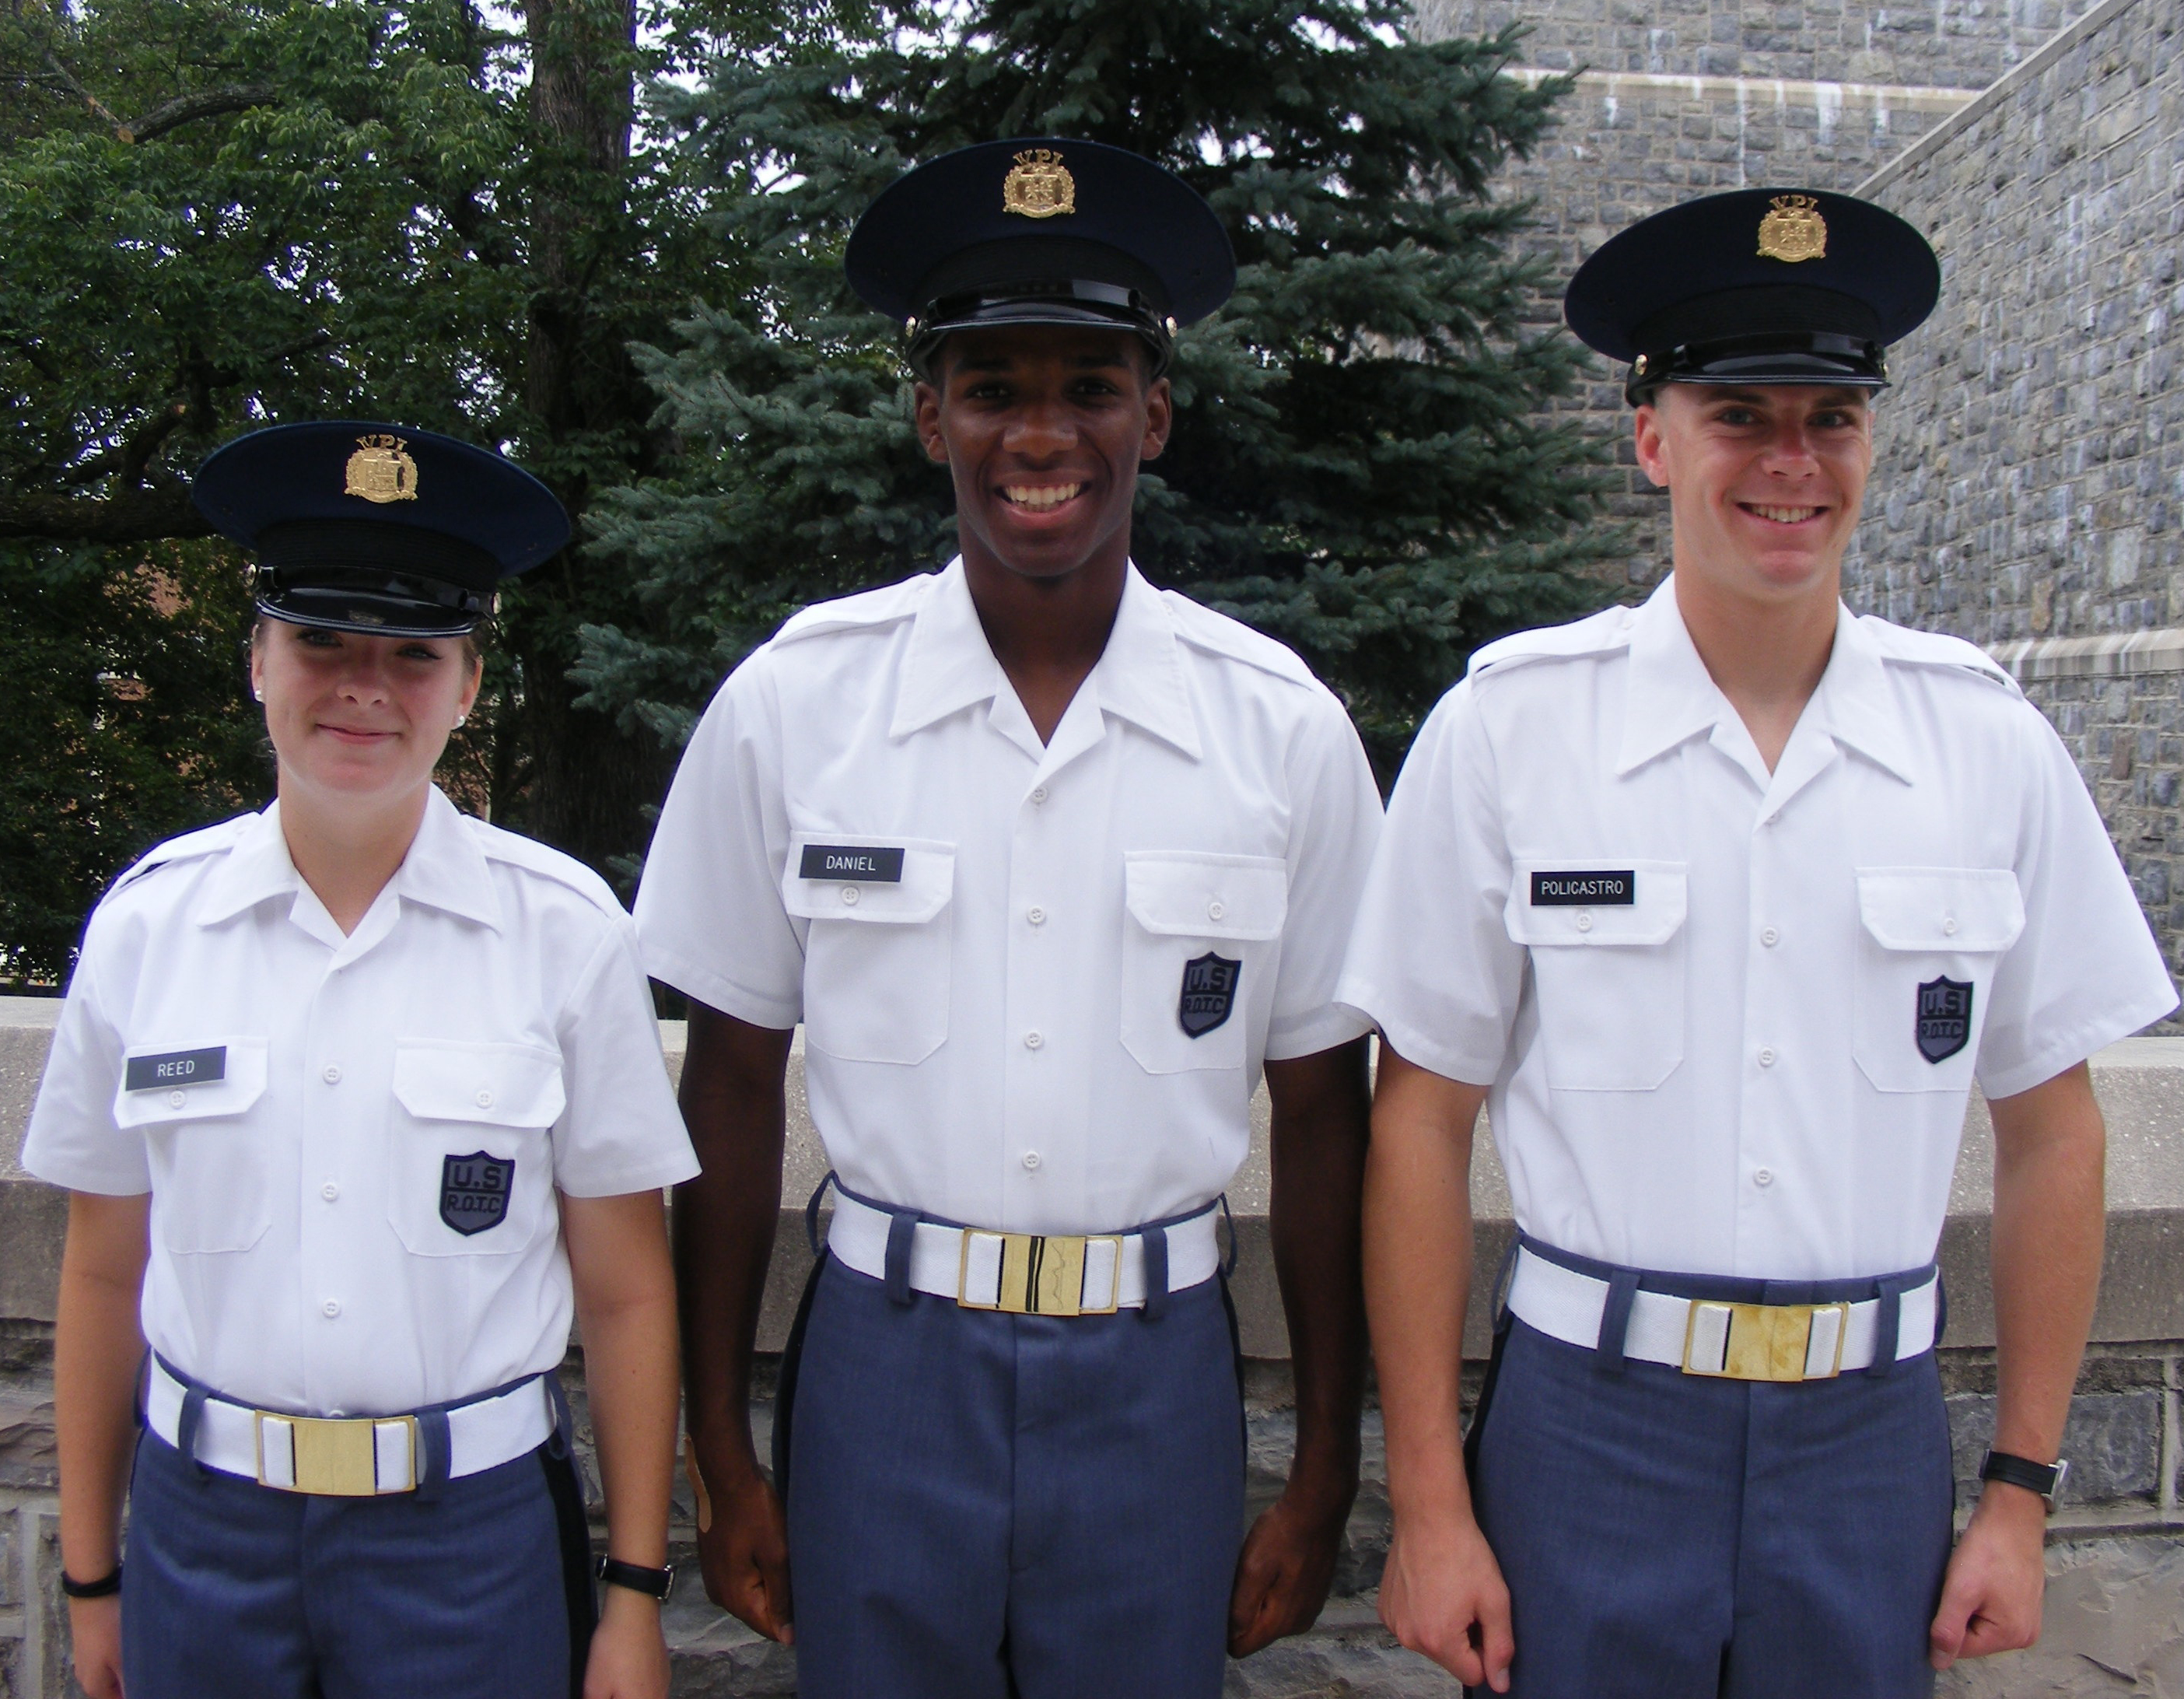 From left to right standing in front of Torgerson Hall are Cadets Samantha Reed, Lyndon Daniel, and Carlo Policastro